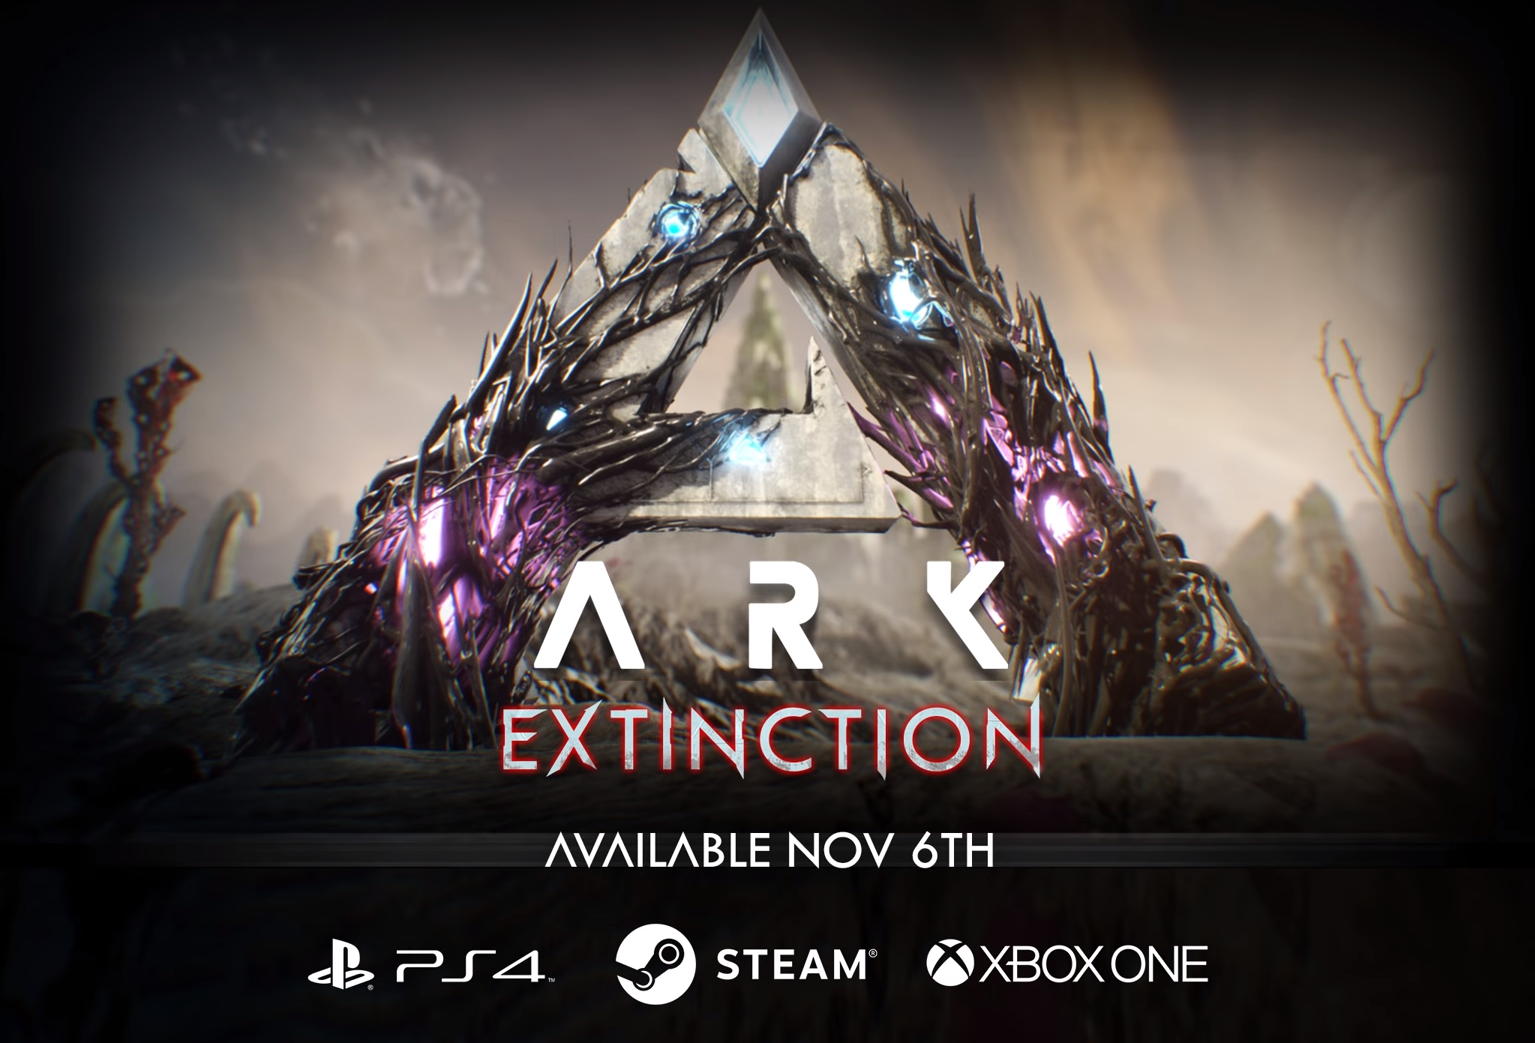 FIRST TRAILER & GAMEPLAY DETAILS FOR ARK: EXTINCTION